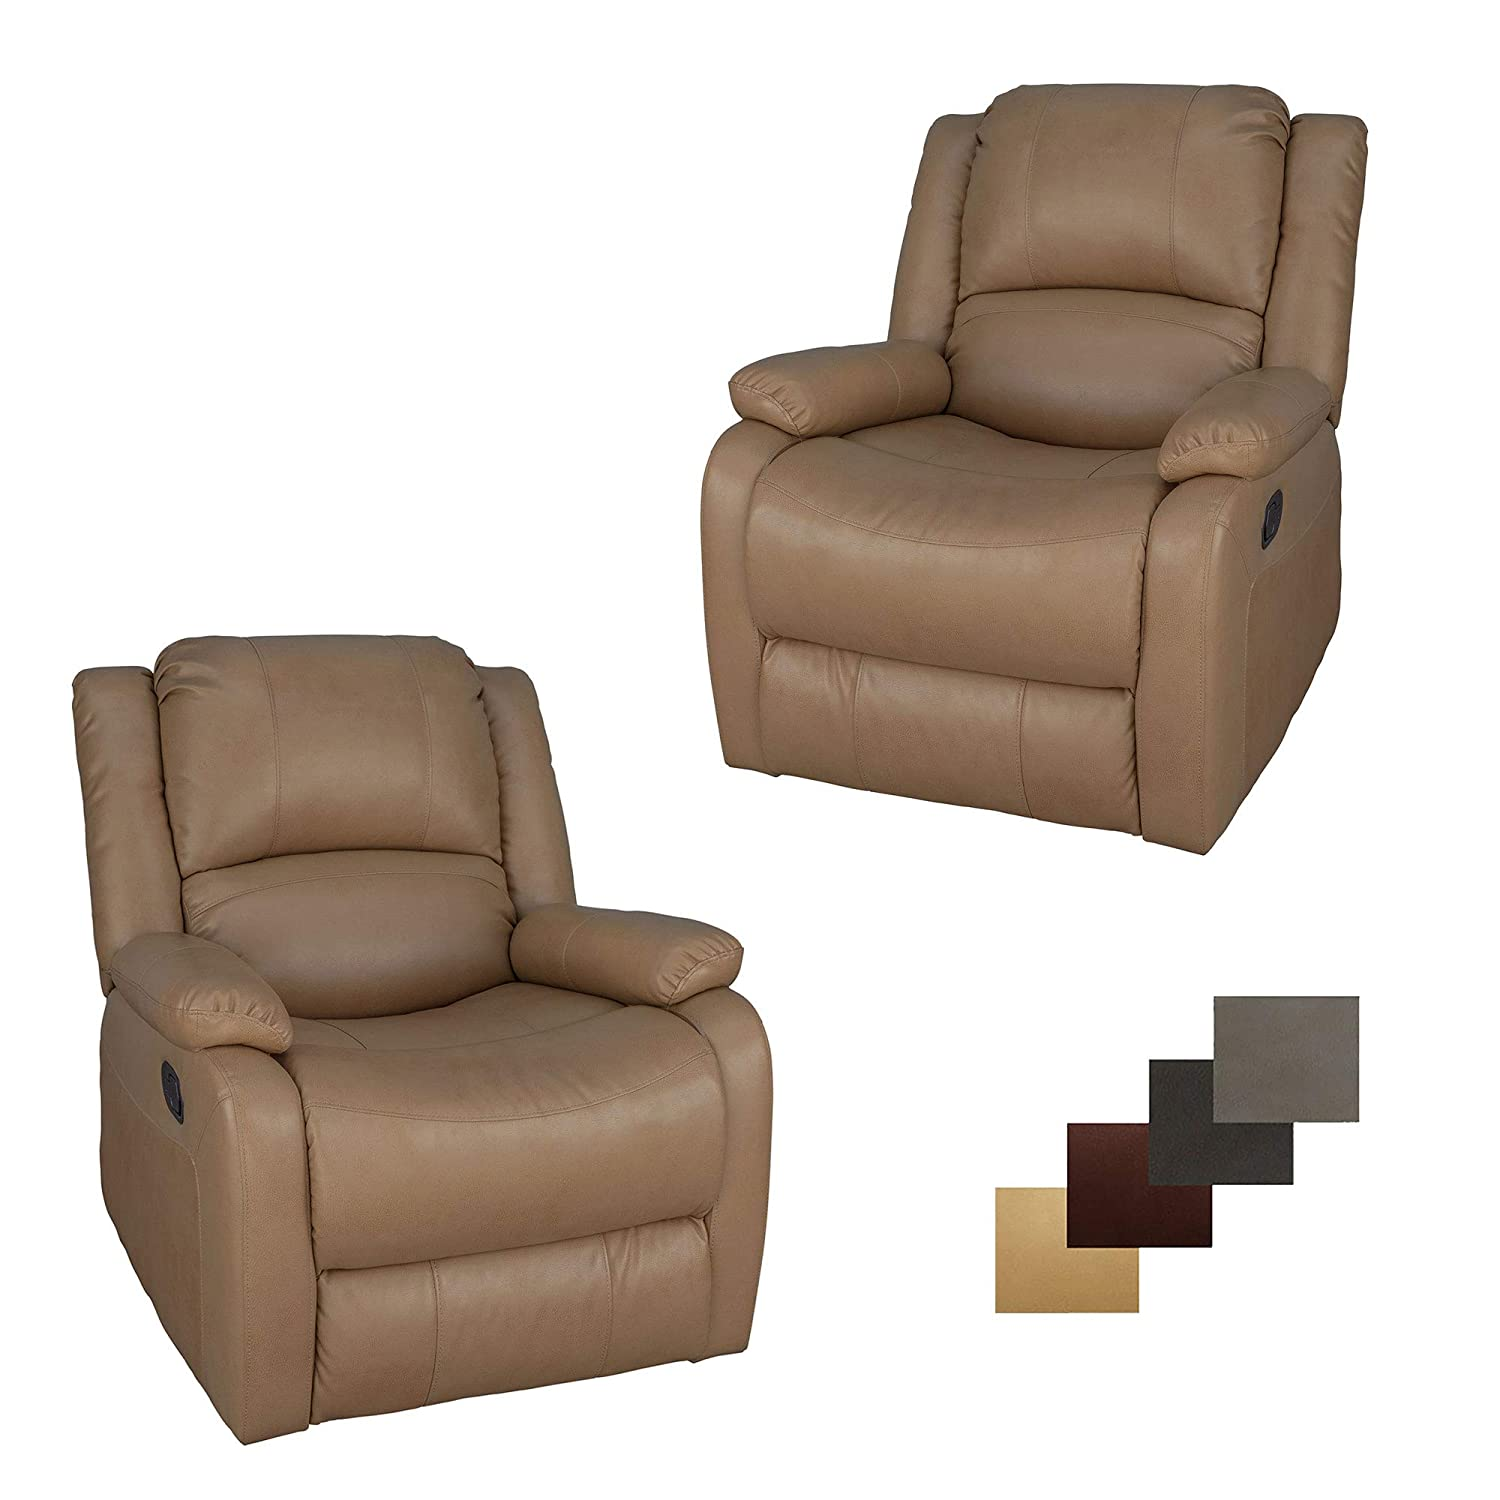 Amazon com set of 2 recpro charles collection 30 swivel glider rv recliner rv living room slideout chair rv furniture glider chair toffee